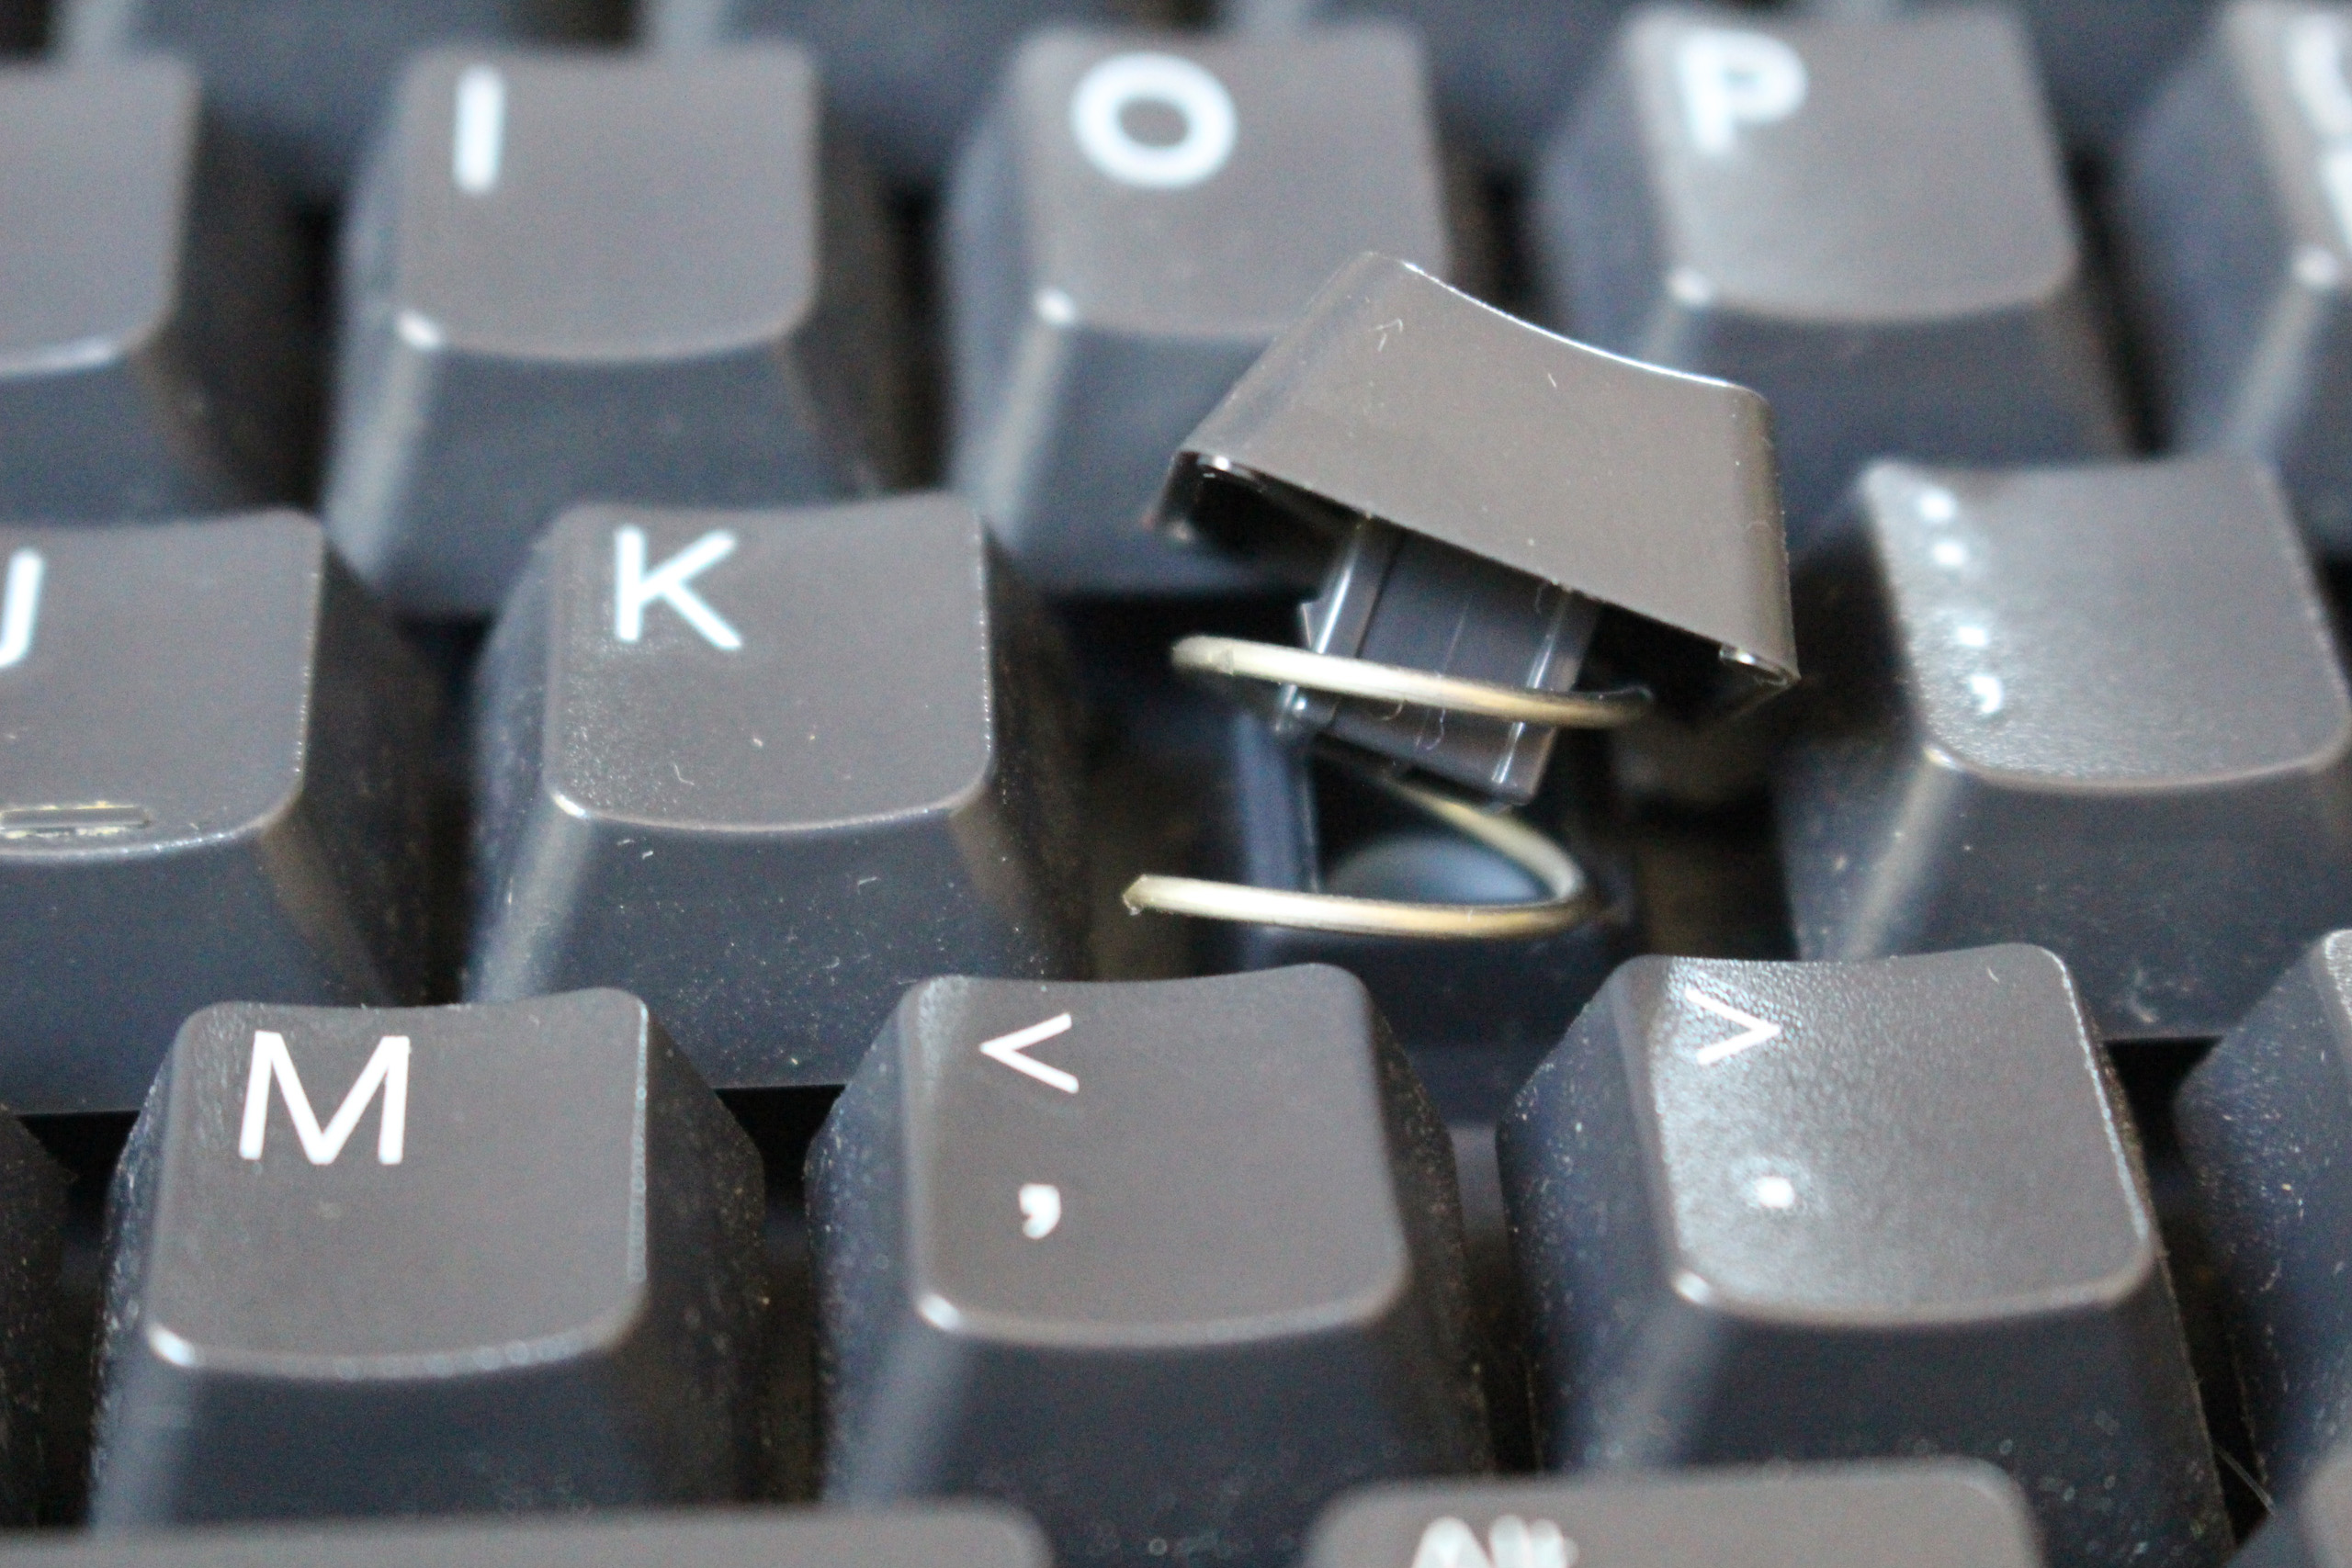 Close up of a keyboard. One key has been slightly removed to reveal a spring tucked within the key. Picture taken by Steven LeMieux